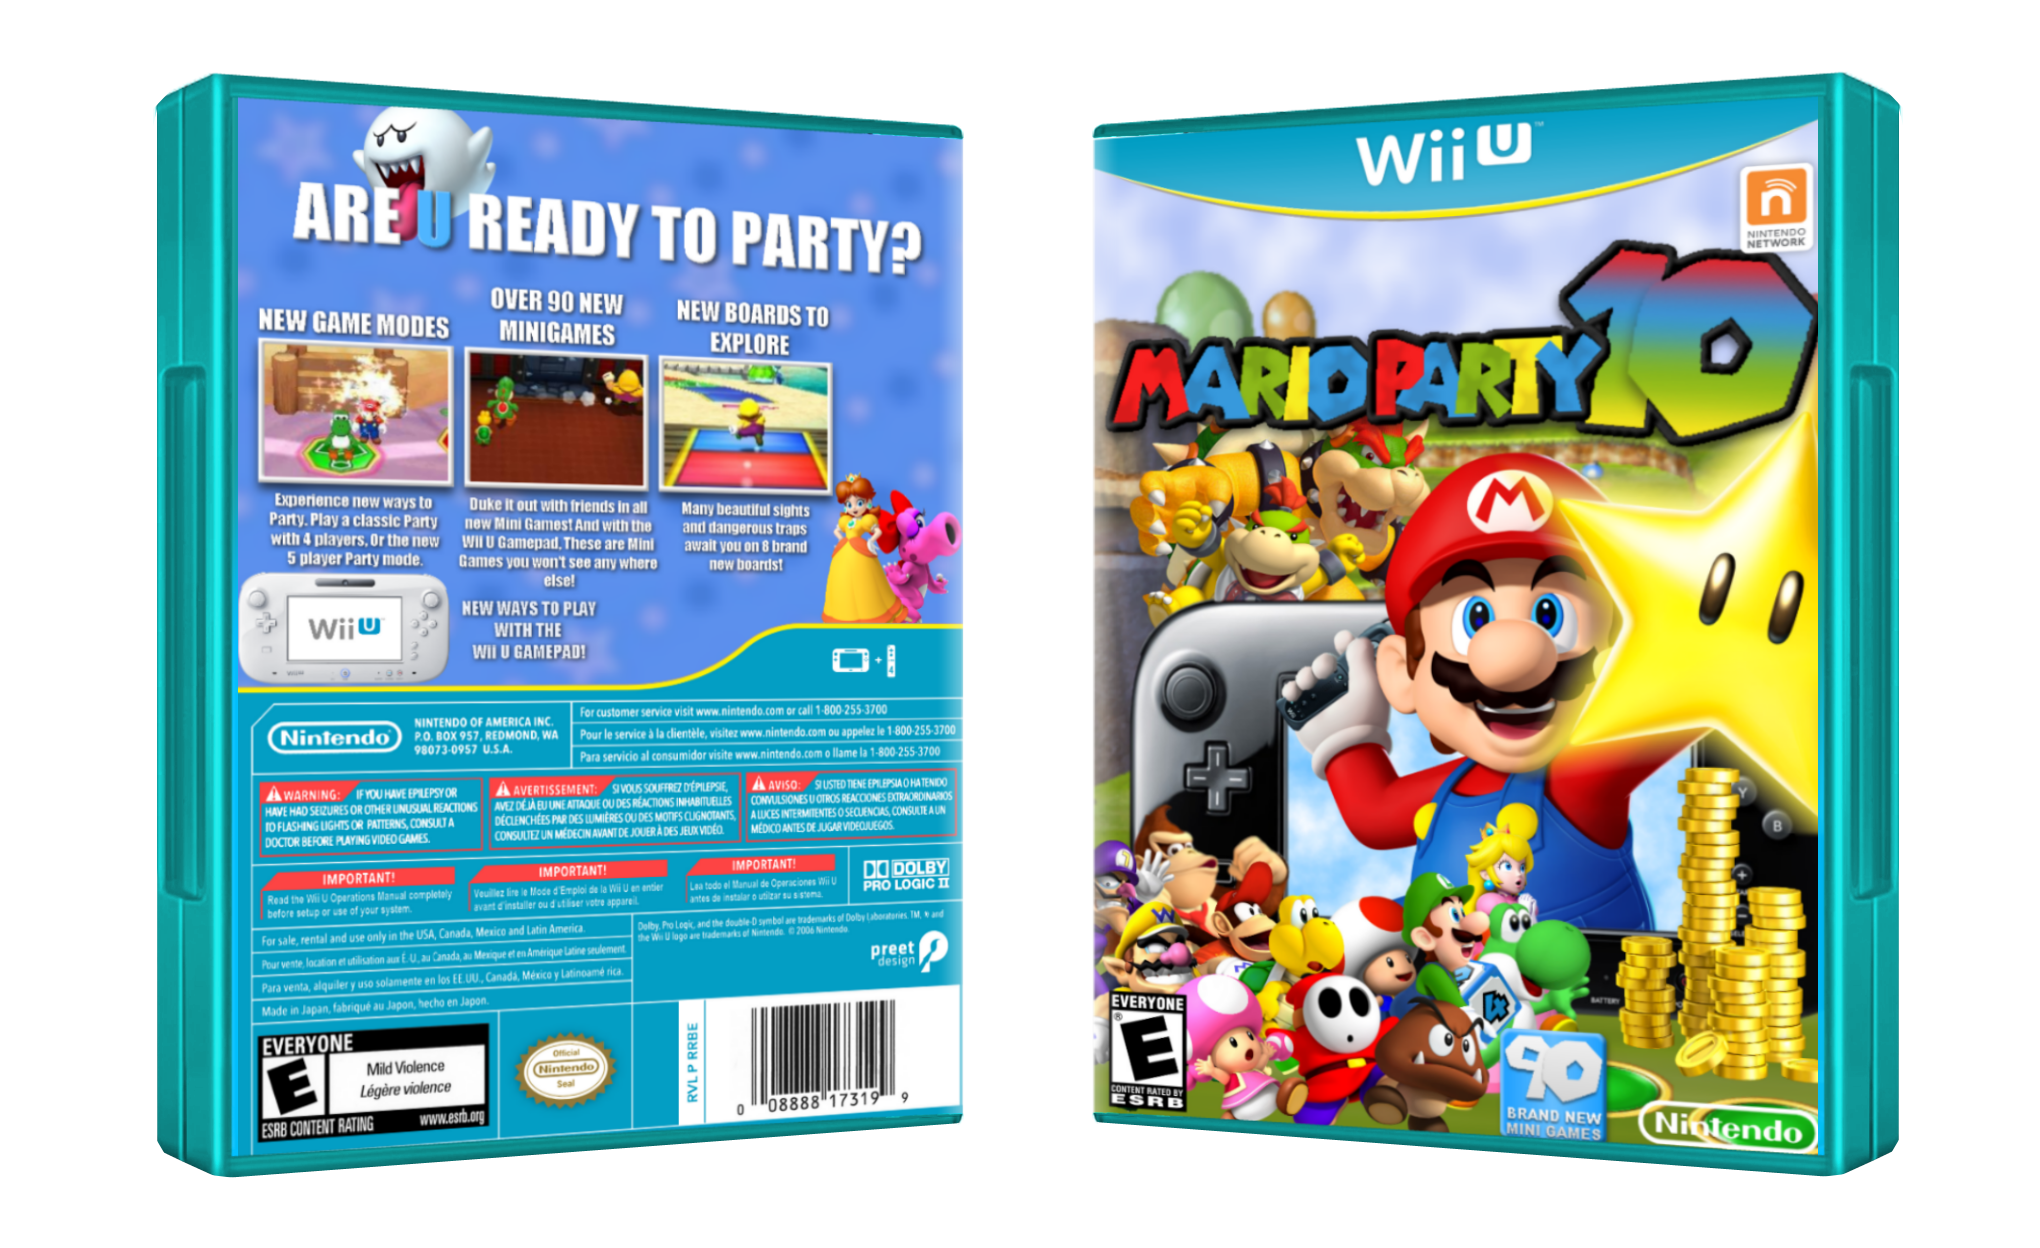 Viewing full size Mario Party 10 box cover